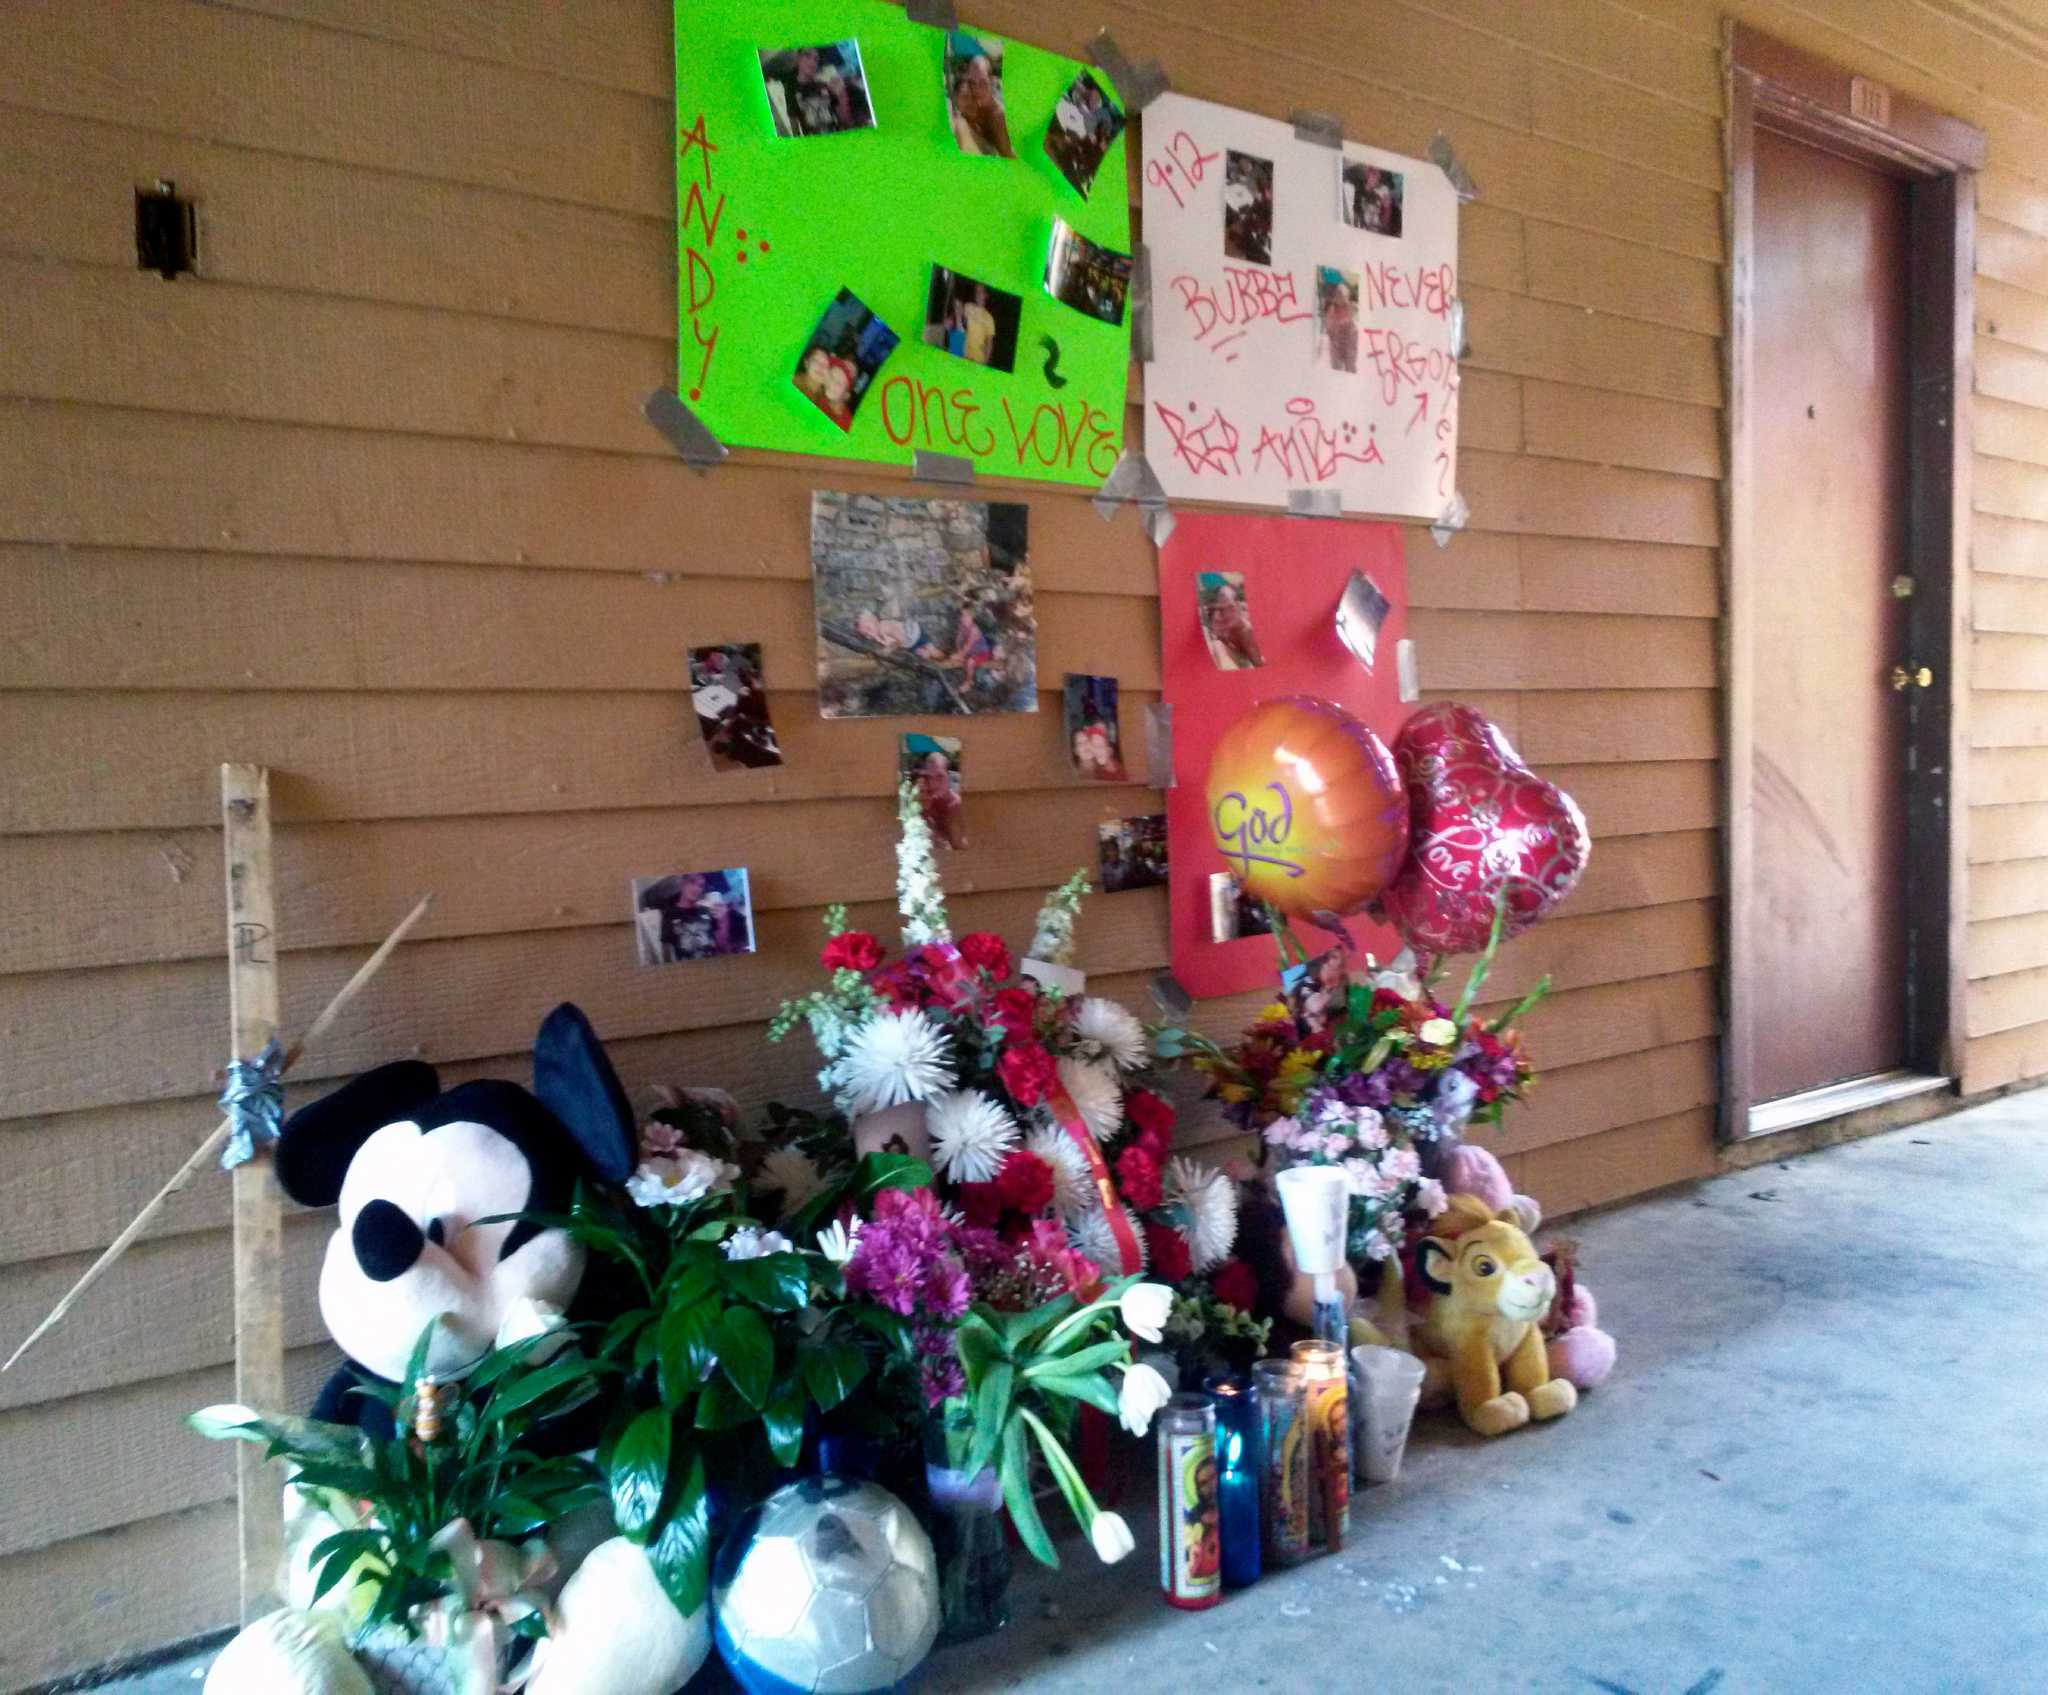 Man killed after robbery remembered for wanting to protect San